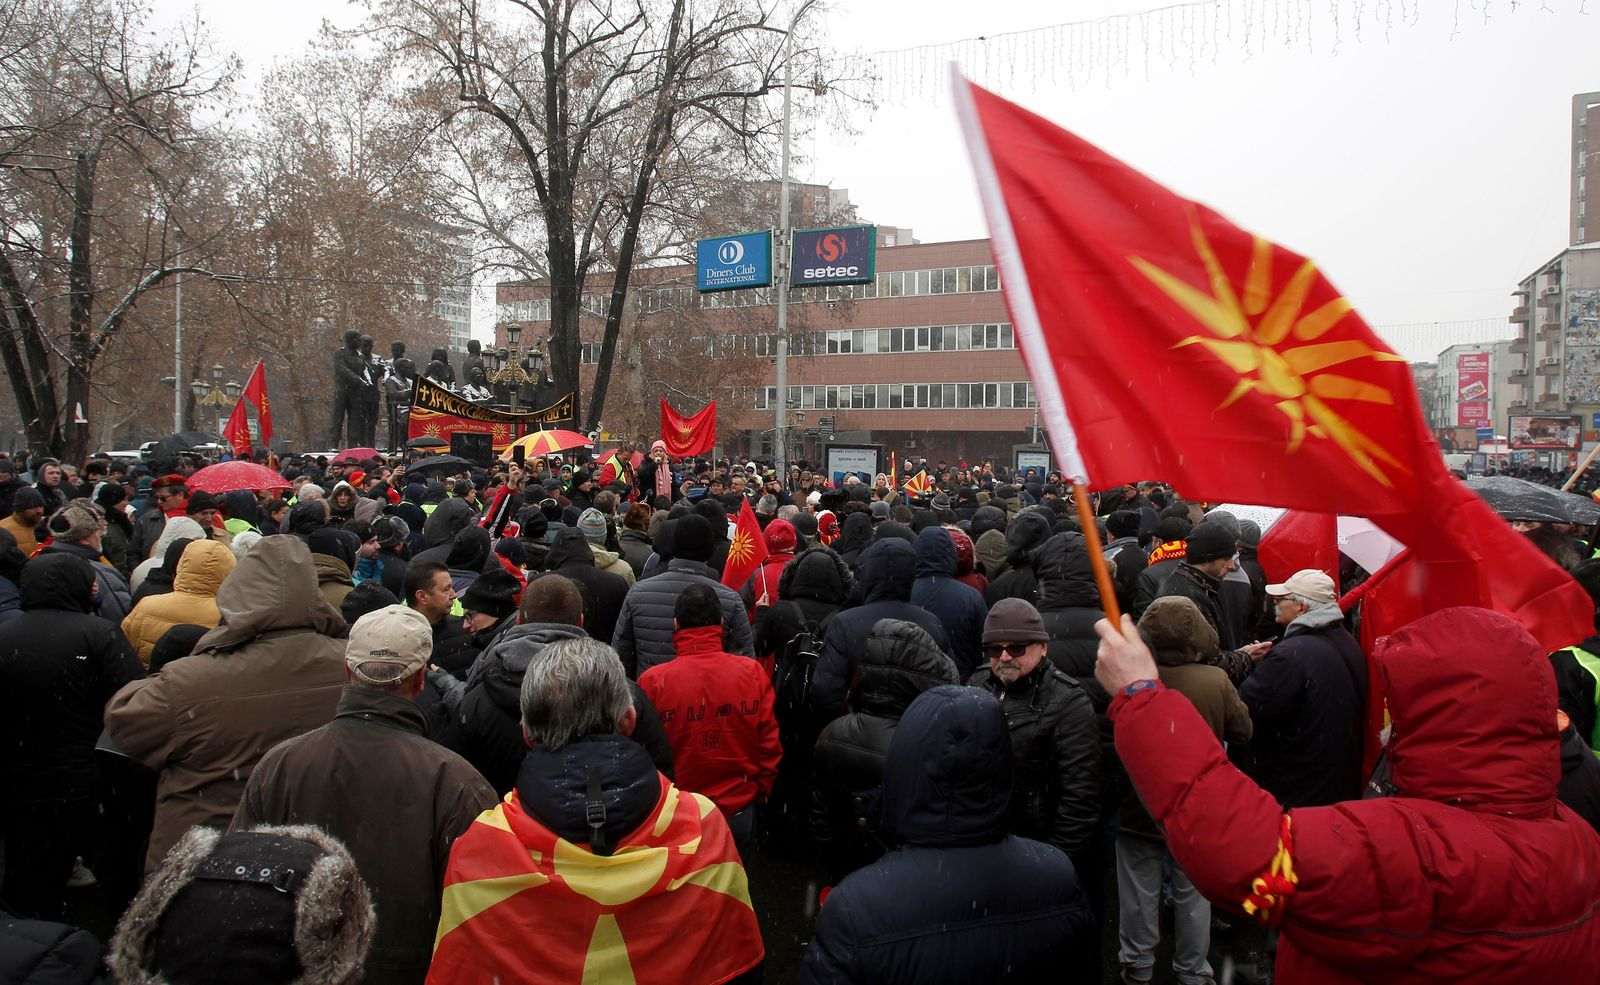 Opponents to the change of the country's constitutional name protest outside the parliament building prior to a session of the Macedonian Parliament in the capital Skopje, Wednesday, Jan. 9, 2019. (AP Photo/Boris Grdanoski)